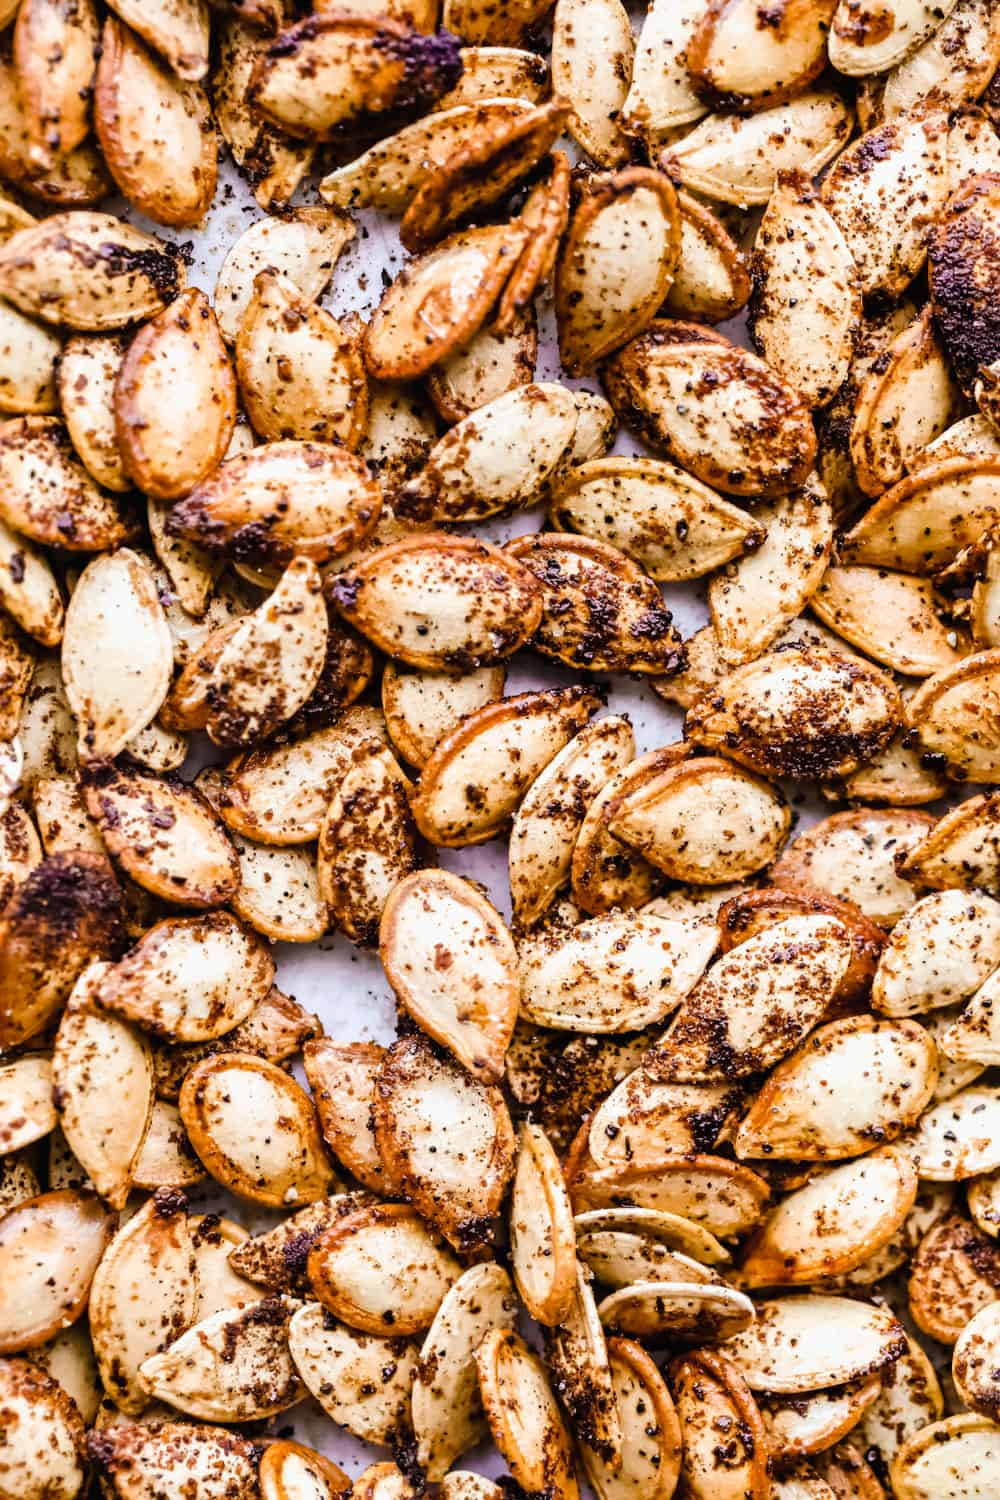 Roasted pumpkin seeds on a baking sheet.